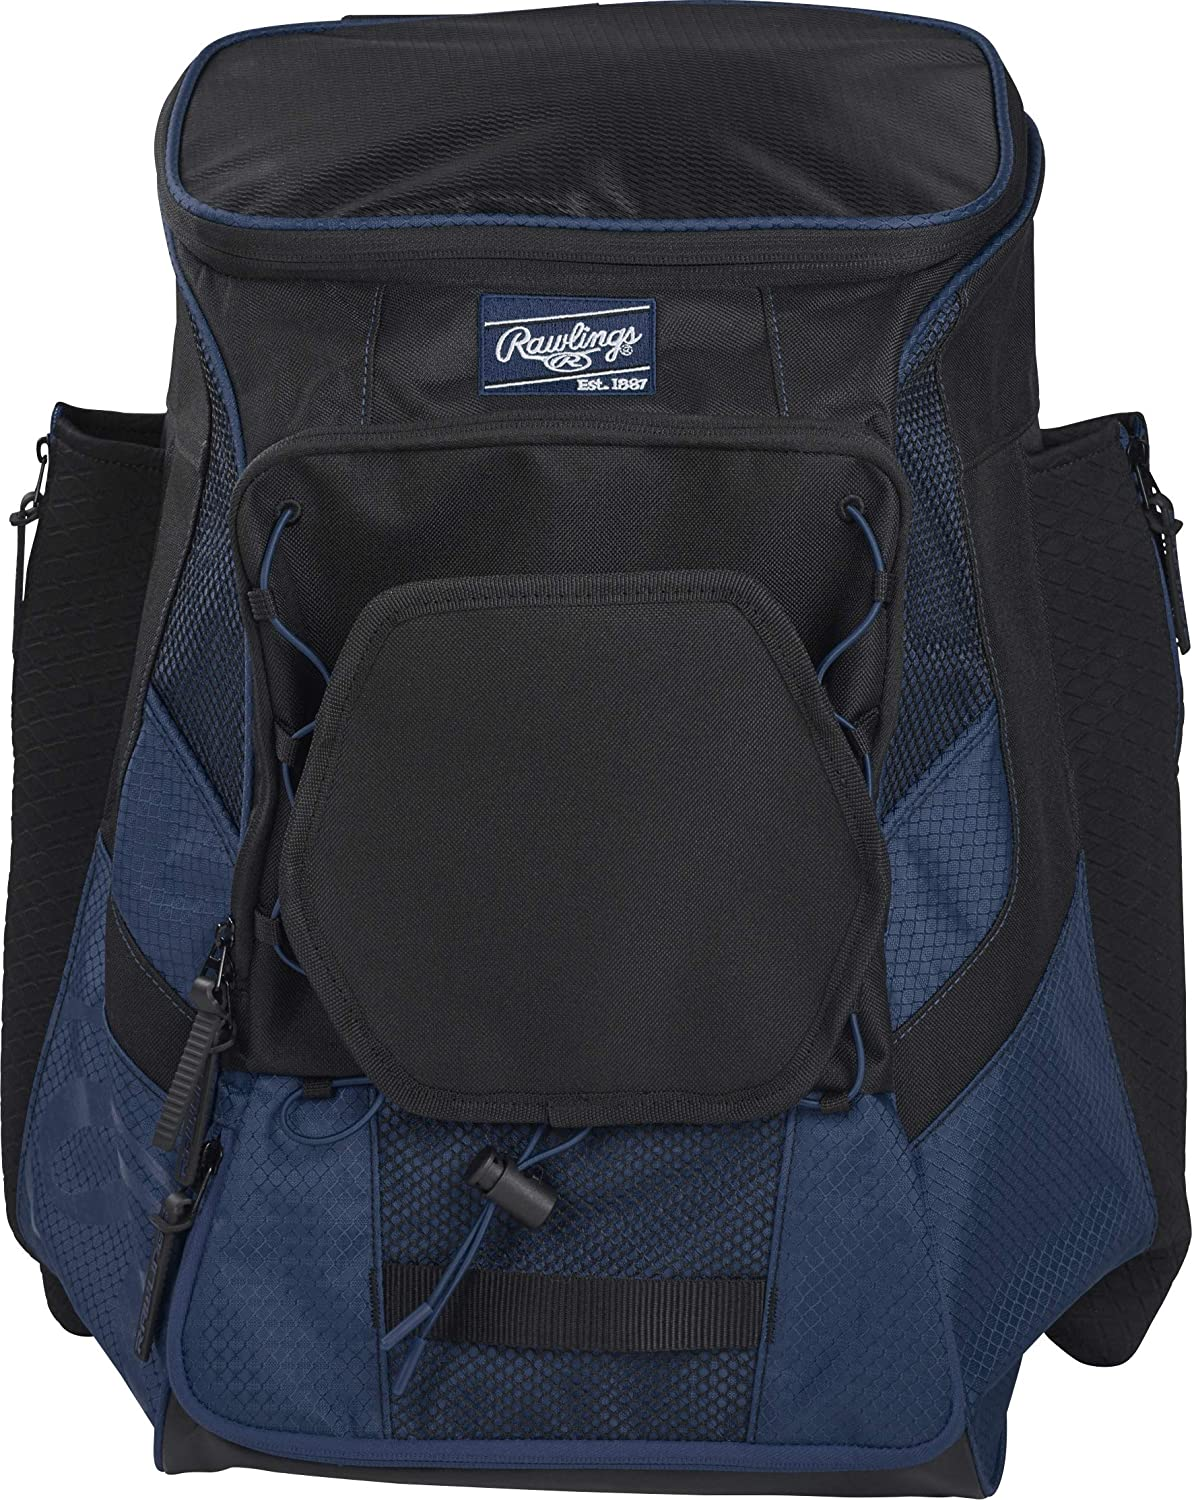 Rawlings Players R600 Backpack Max 84% Bargain OFF